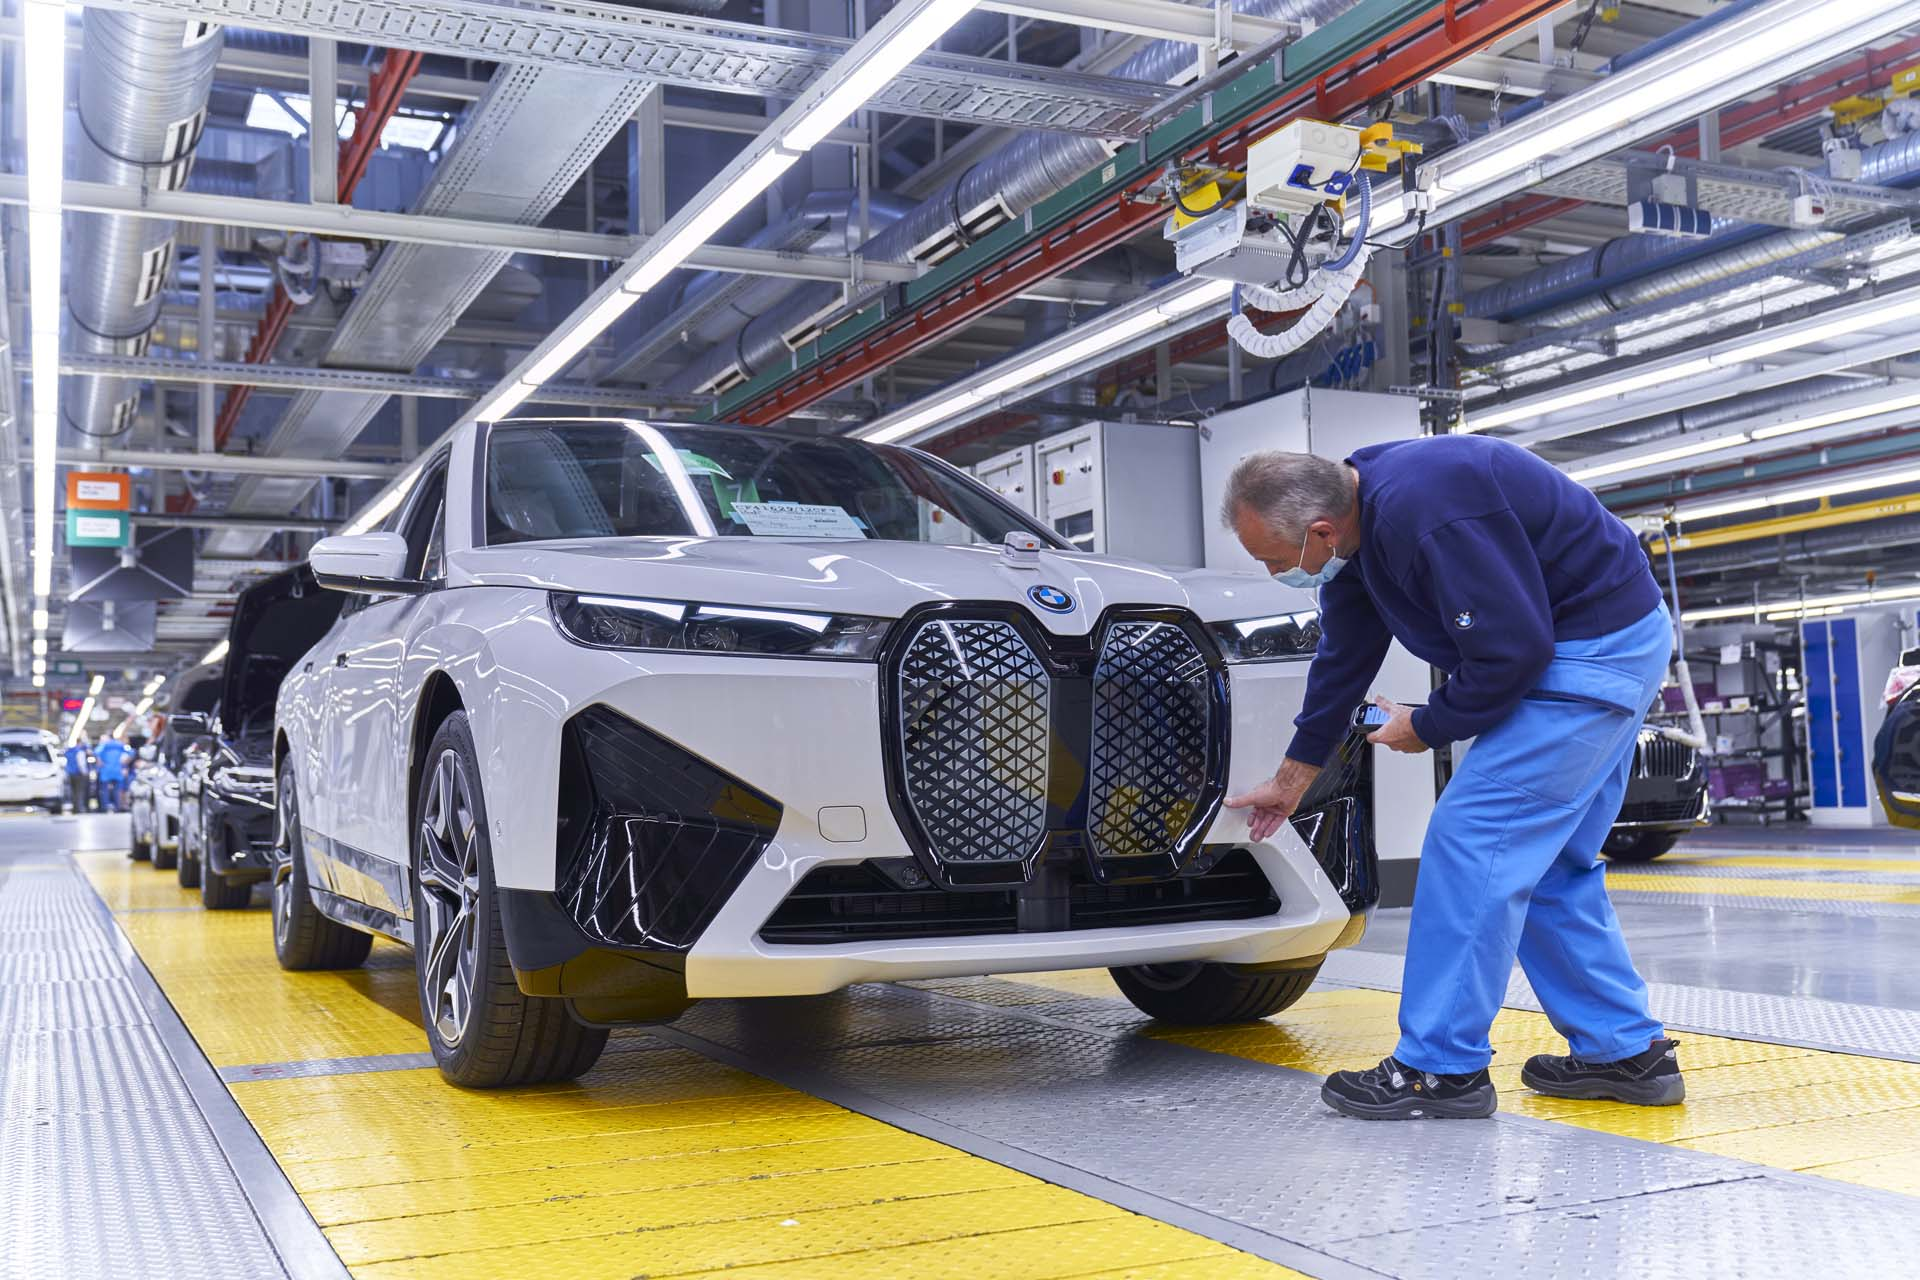 BMW promises prototype solid-state batteries before 2025, in production by 2030